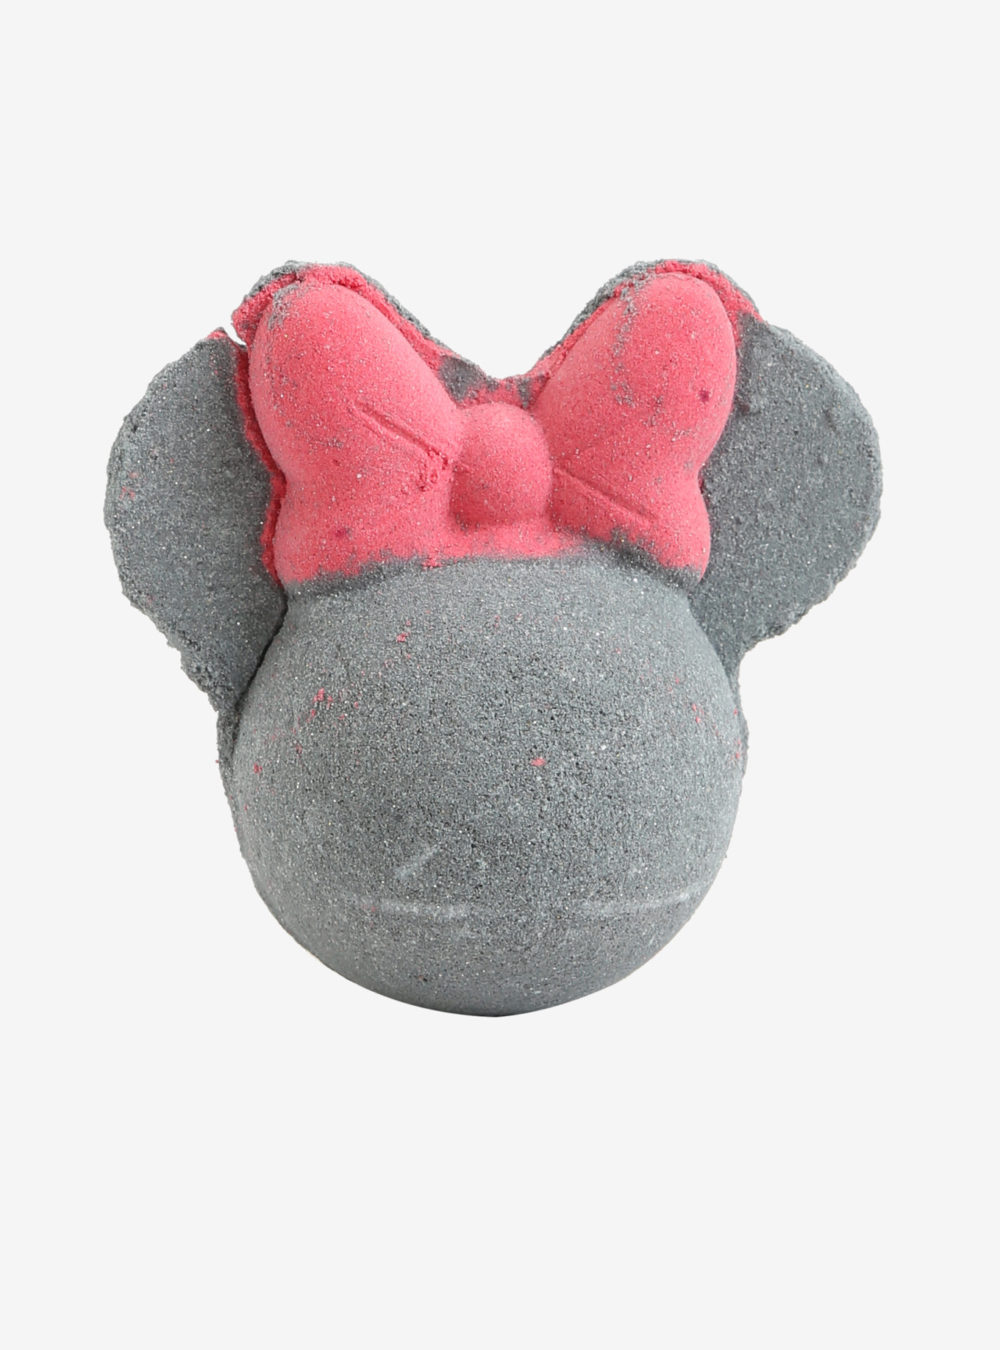 Disney fans, stop what you're doing — you can now buy a Minnie Mouse bath bomb